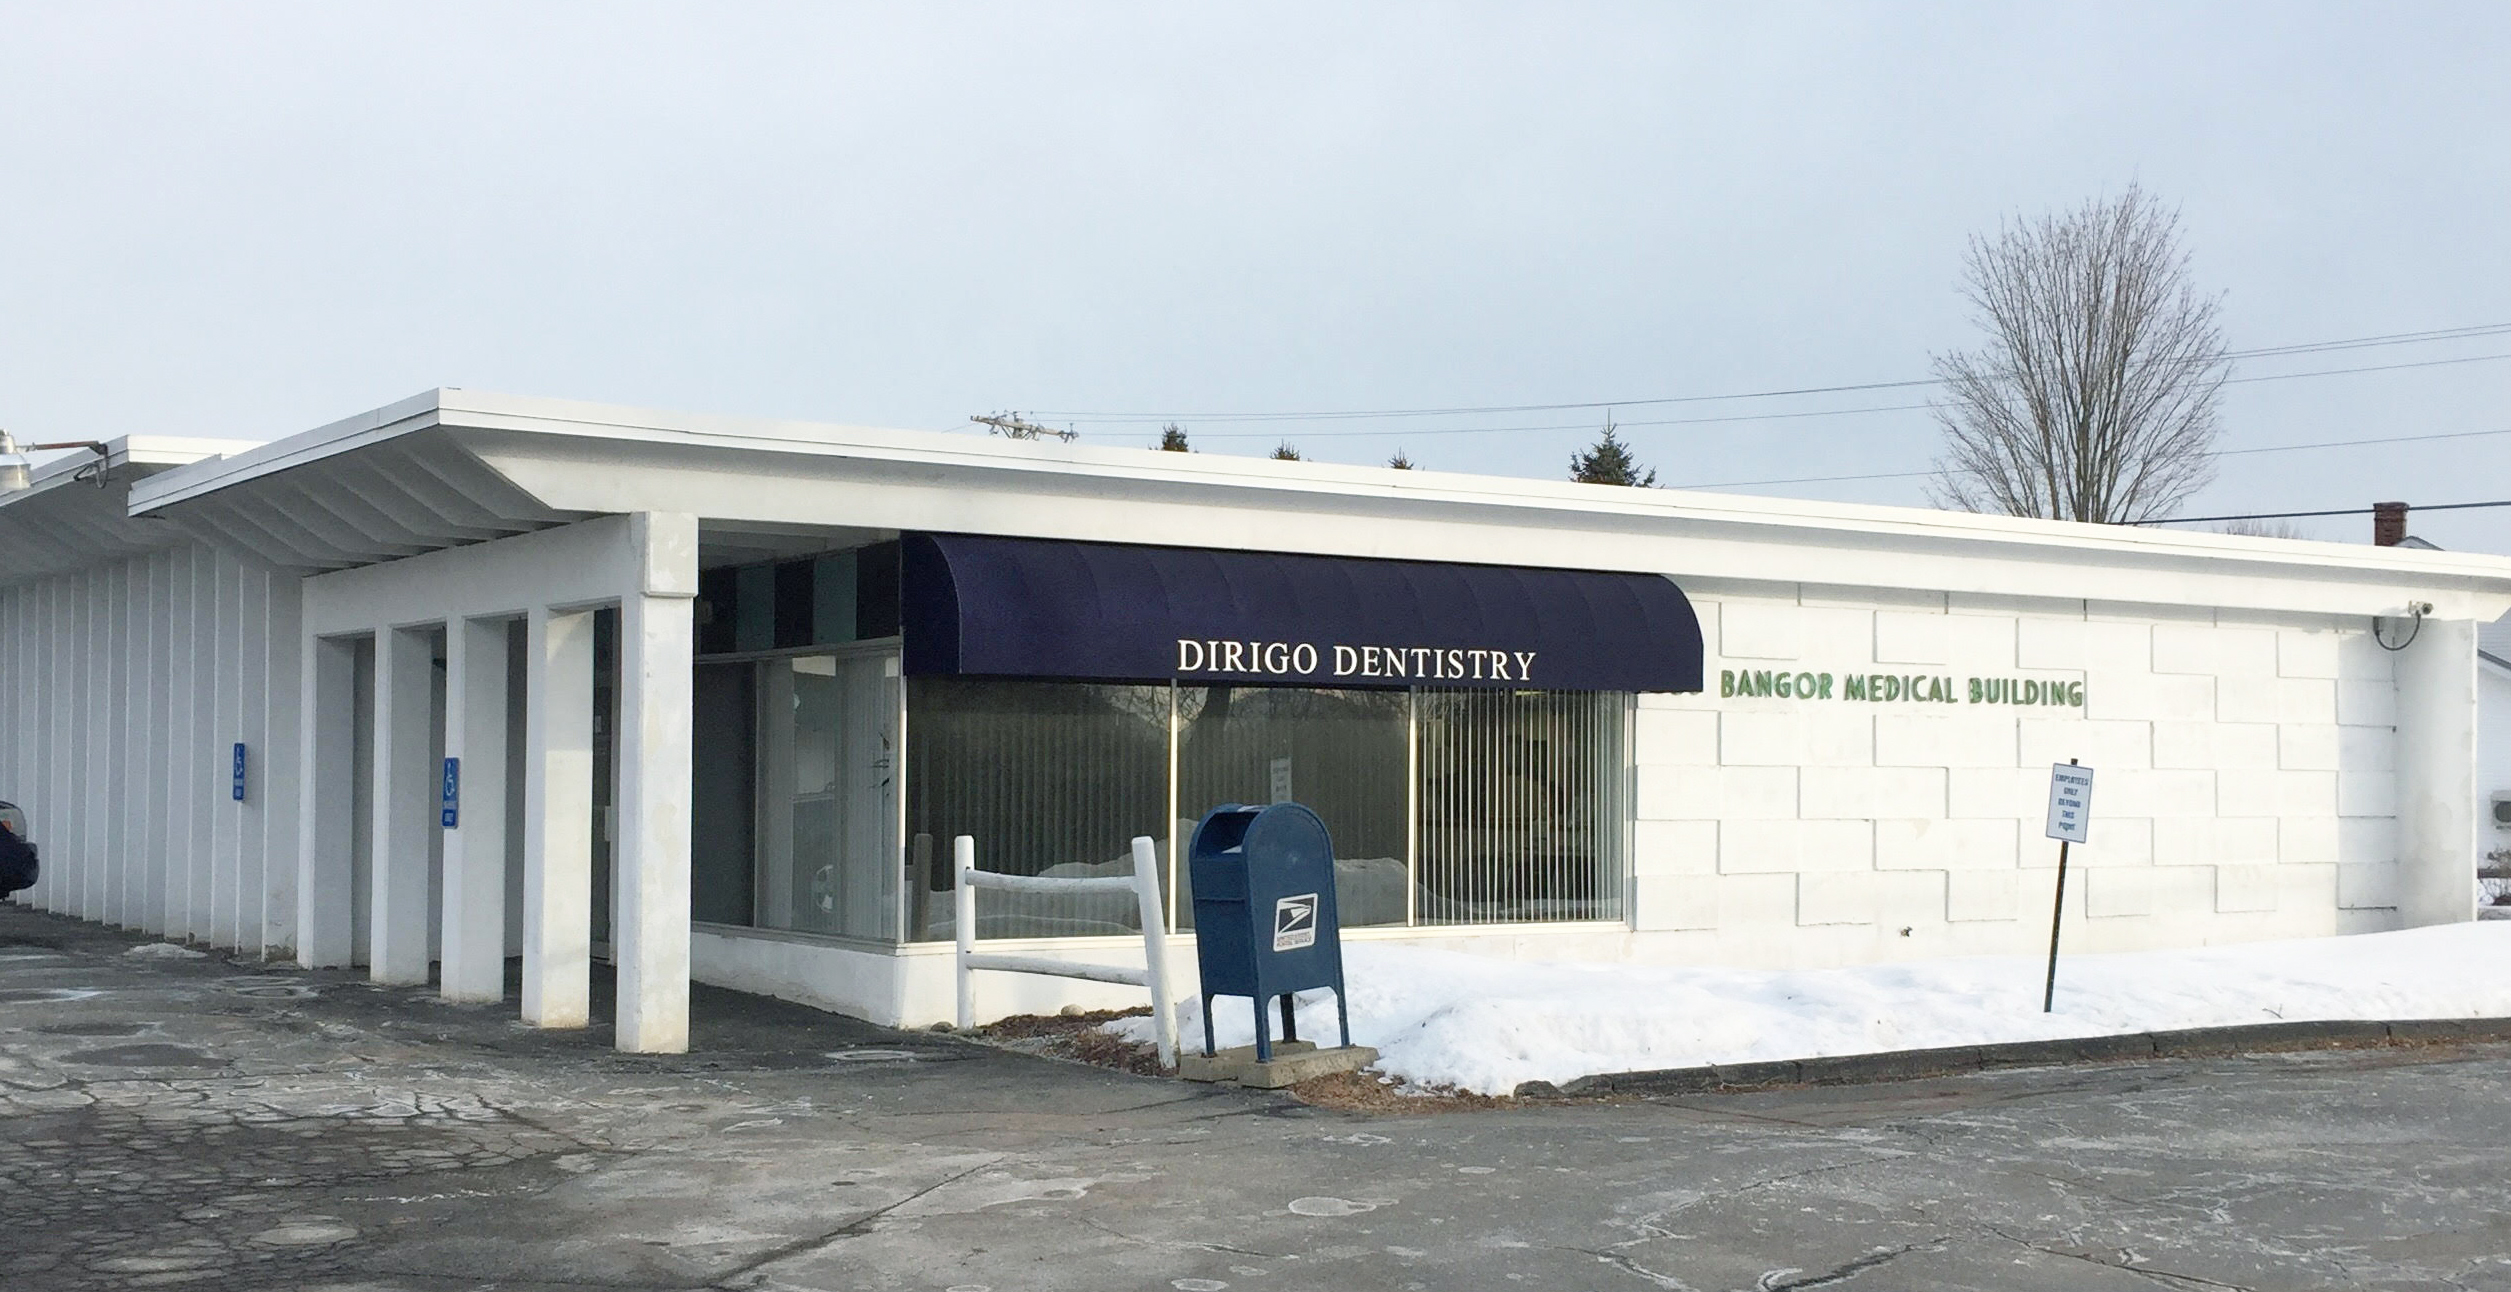 2018-02-06 - Dirigo Dentistry Photo - Building Front